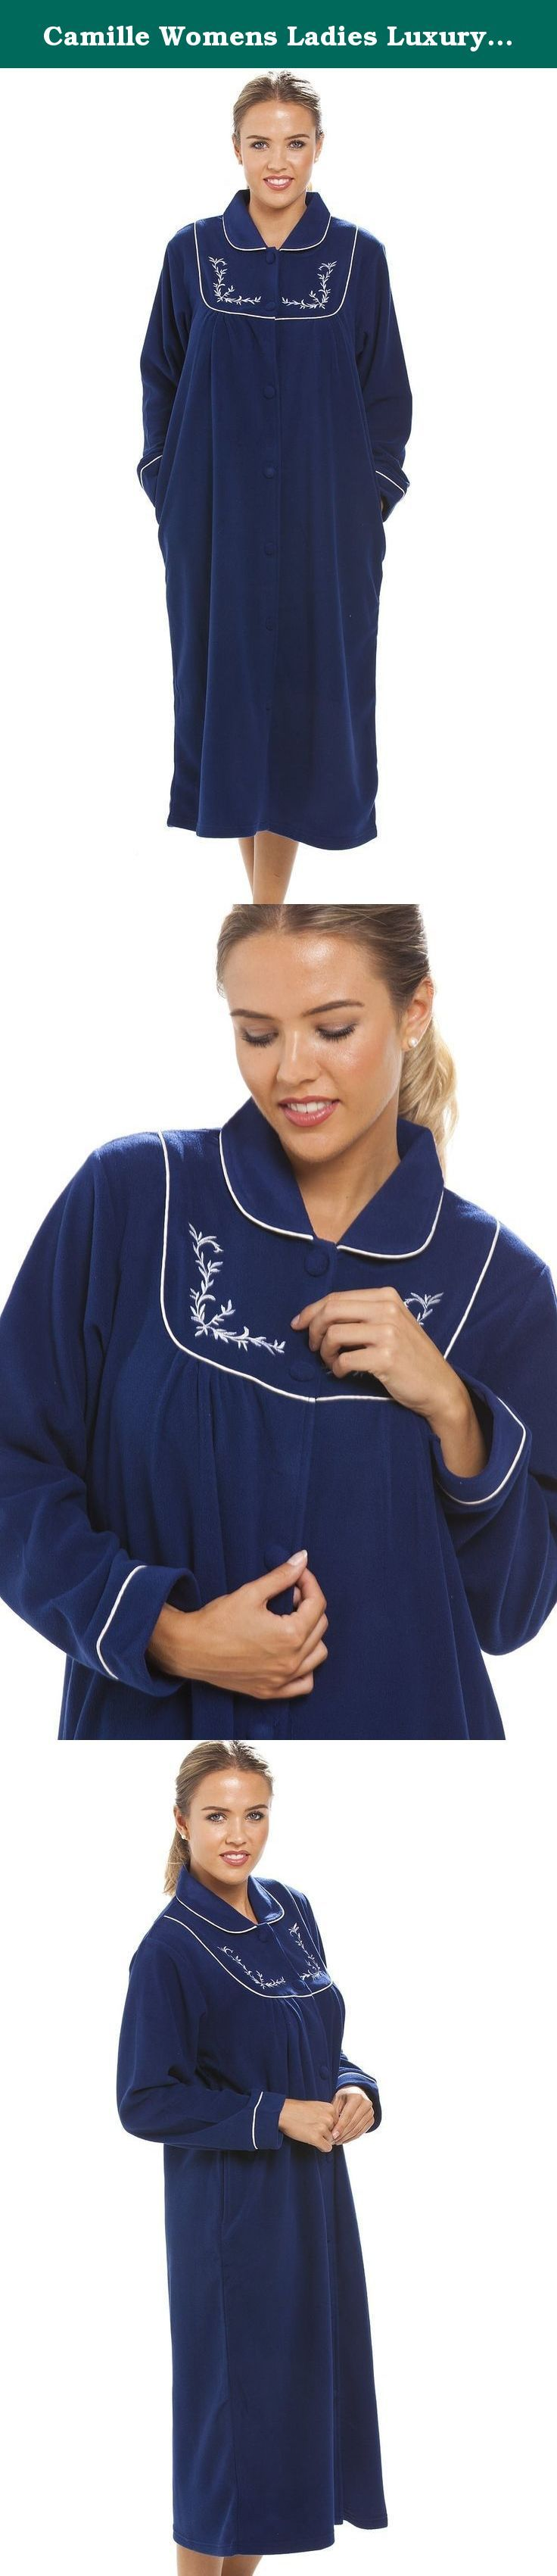 Camille Womens Ladies Luxury Blue Zip Up Housecoat Bath Robe 10/12 BLUE. Luxury Blue Zip Up Housecoat Is Part Of Our New Nightwear Range At Camille. The Housecoat Features A Beautiful Floral Design On The Collar And Pockets, The Housecoat Is 100% Polyester And Is Full Length To Keep You Warm On Cold Winter Nights.